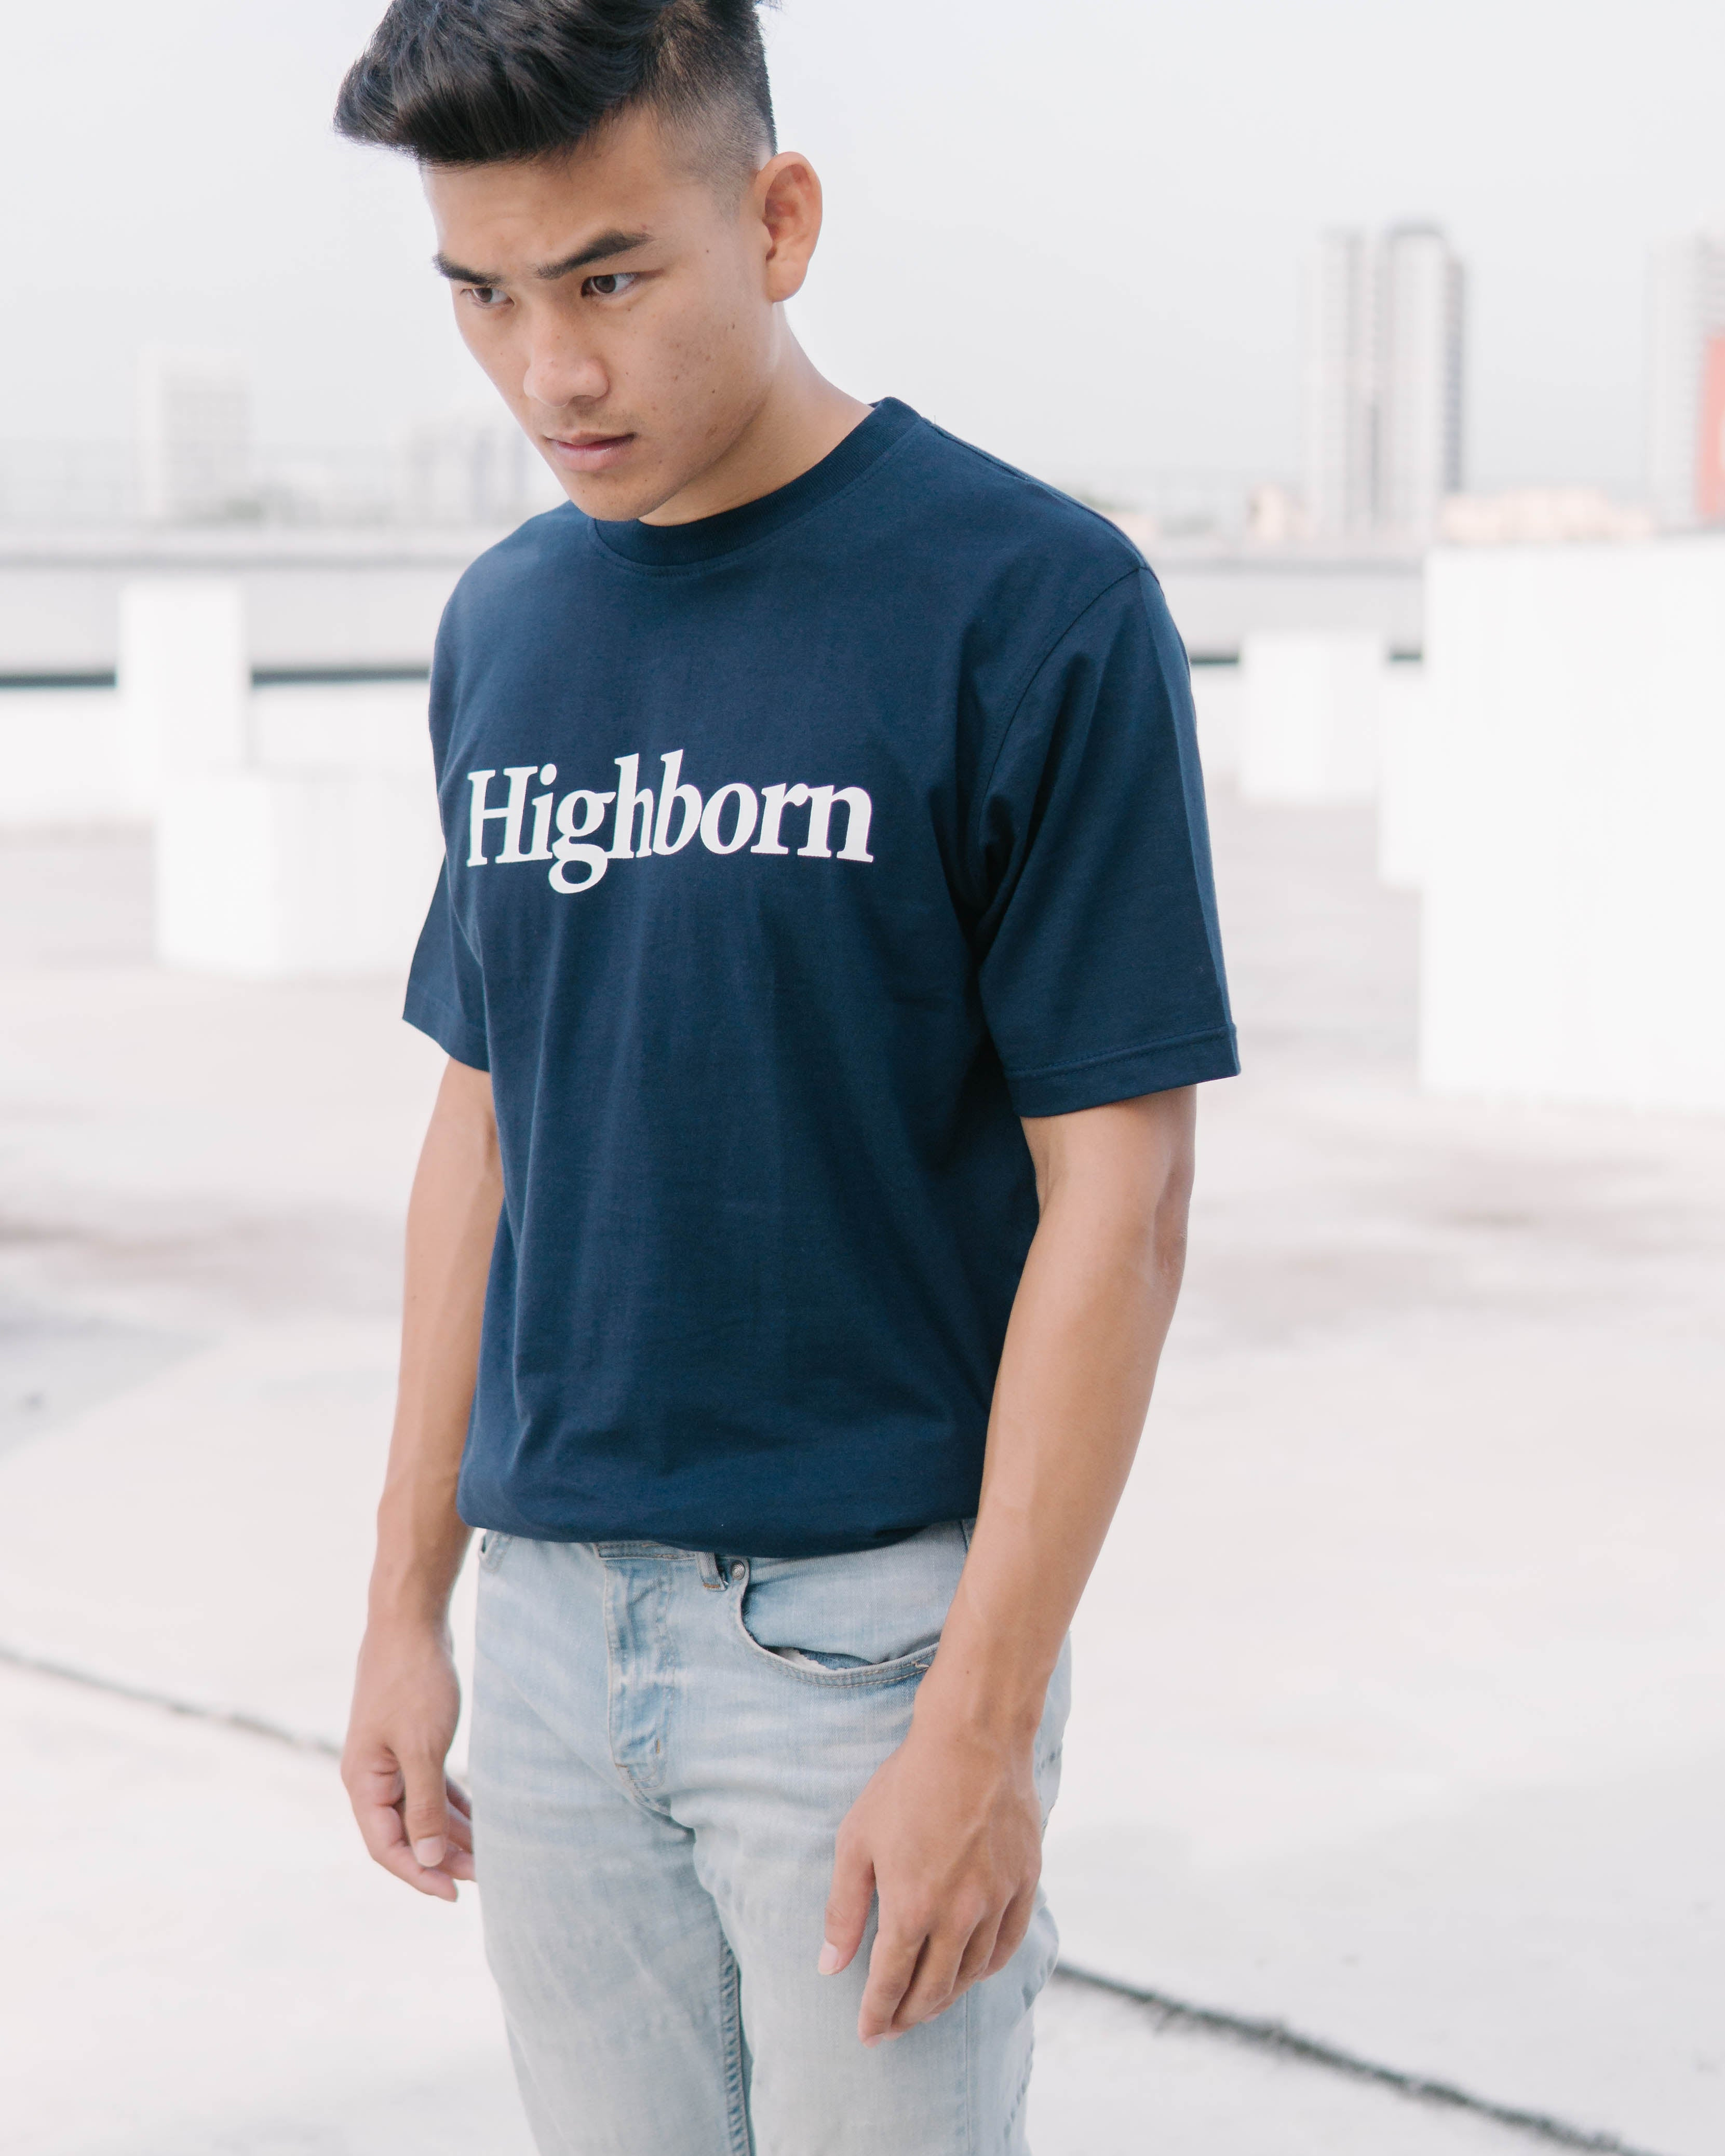 Highborn Navy Blue Logo Tee - Highborn